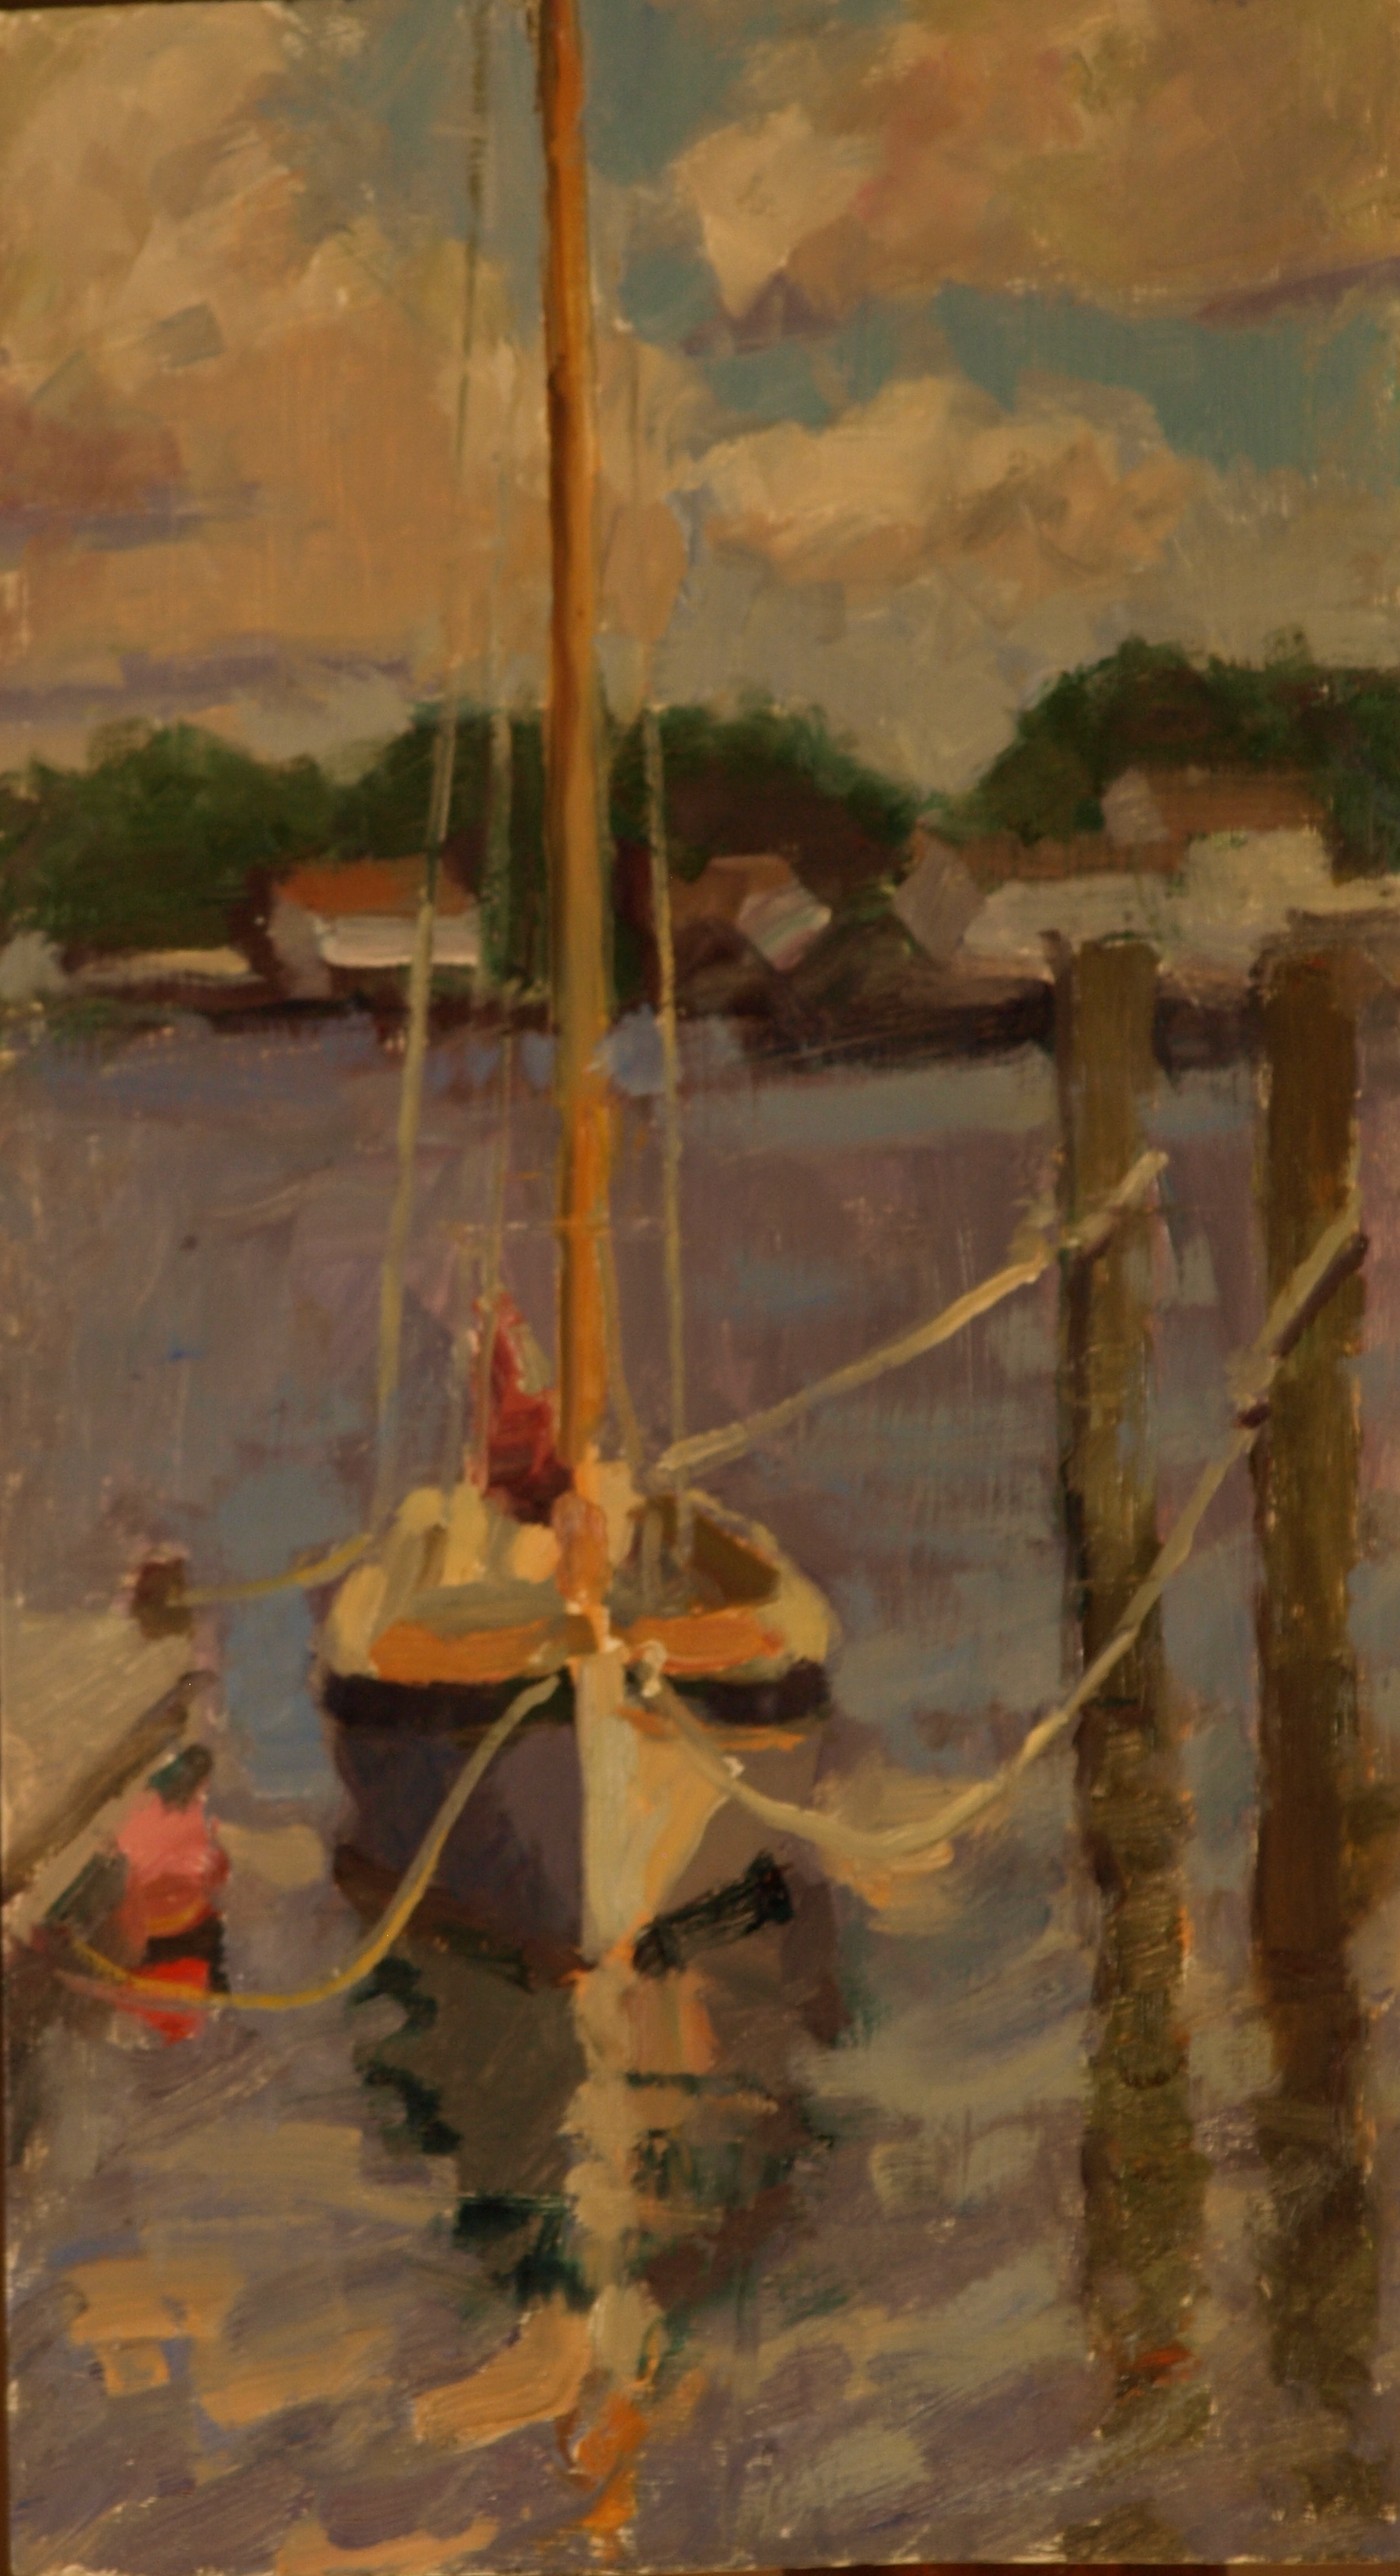 Moored Sailboat, Oil on Panel, 16 x 9 Inches, by Susan Grisell, $300